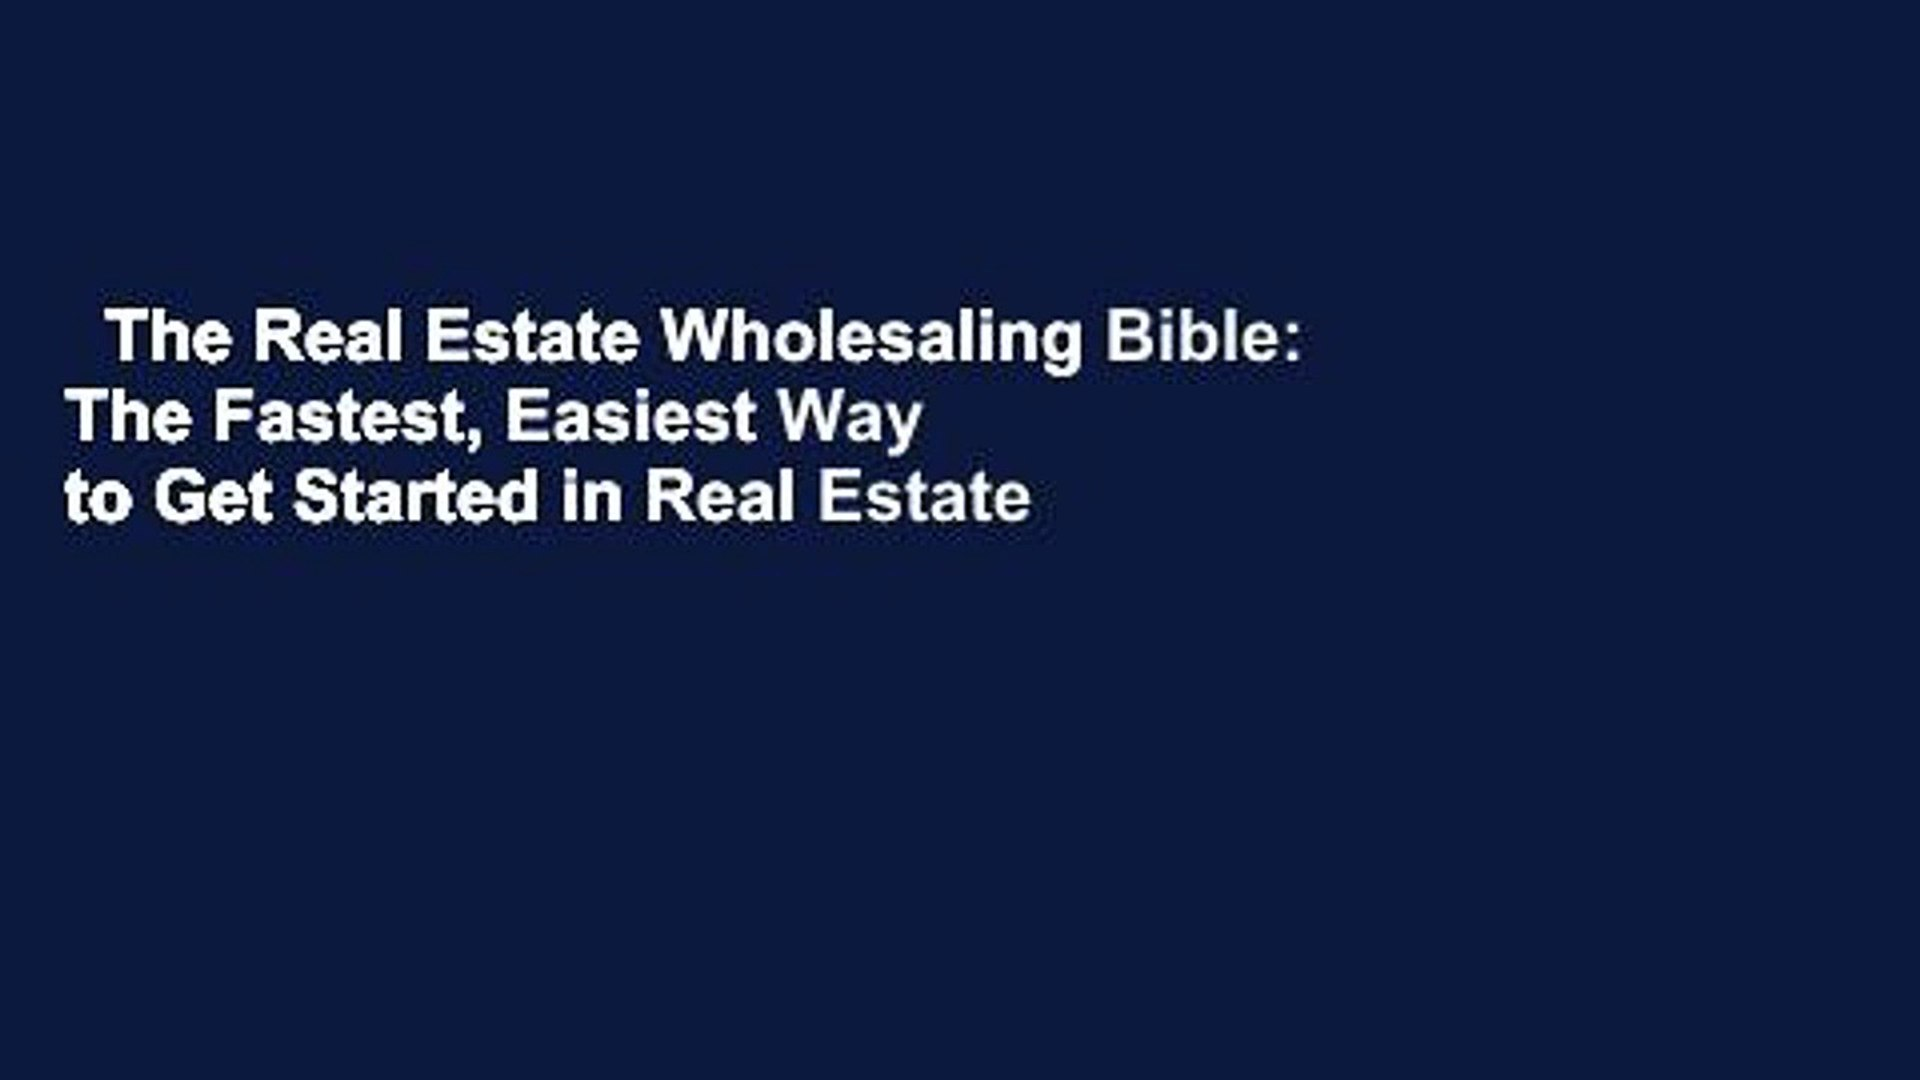 The Real Estate Wholesaling Bible: The Fastest, Easiest Way to Get Started in Real Estate